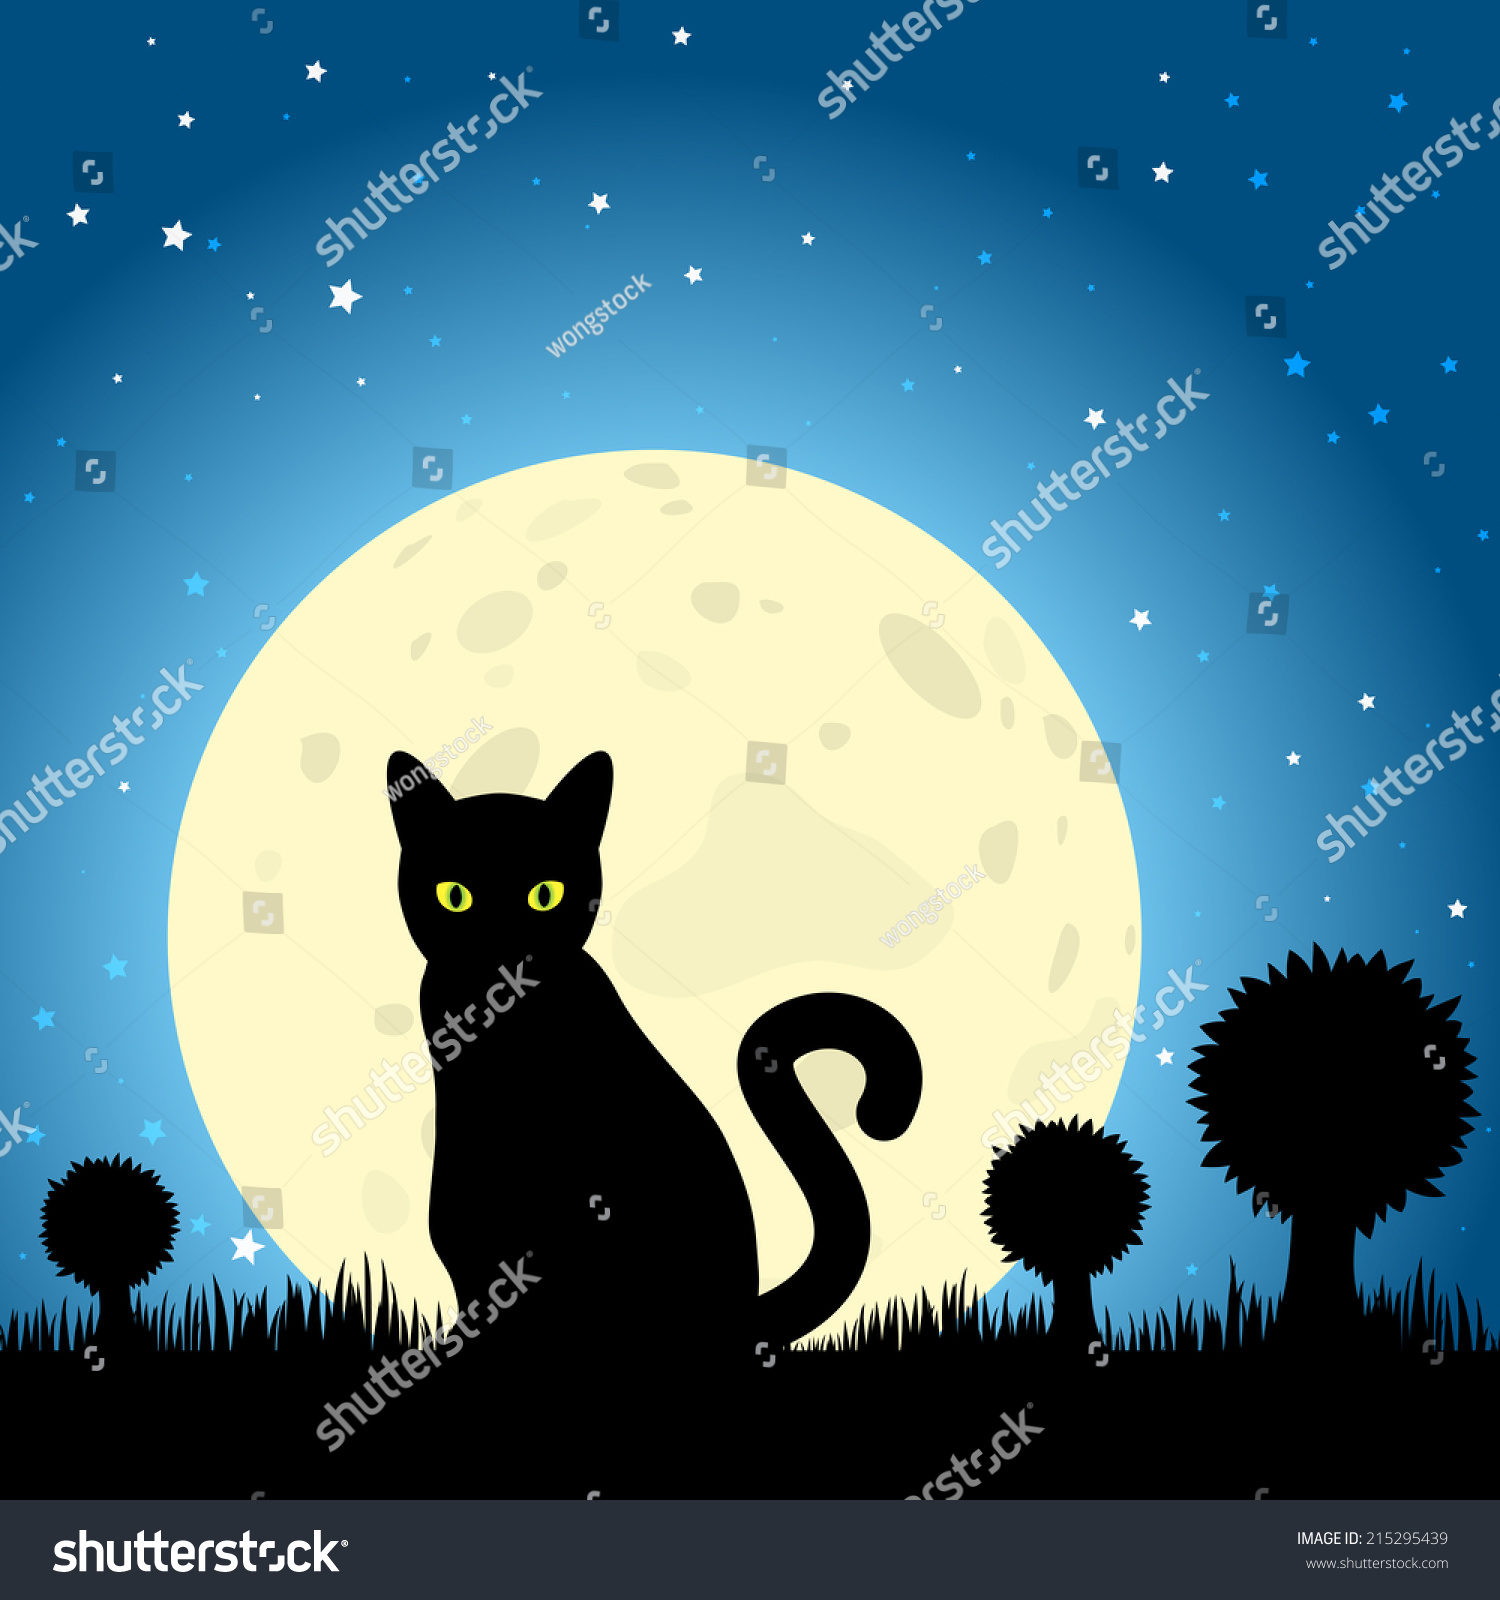 halloween black cat silhouette against a moon night sky eps10 vector - Black Cat Silhouette Halloween